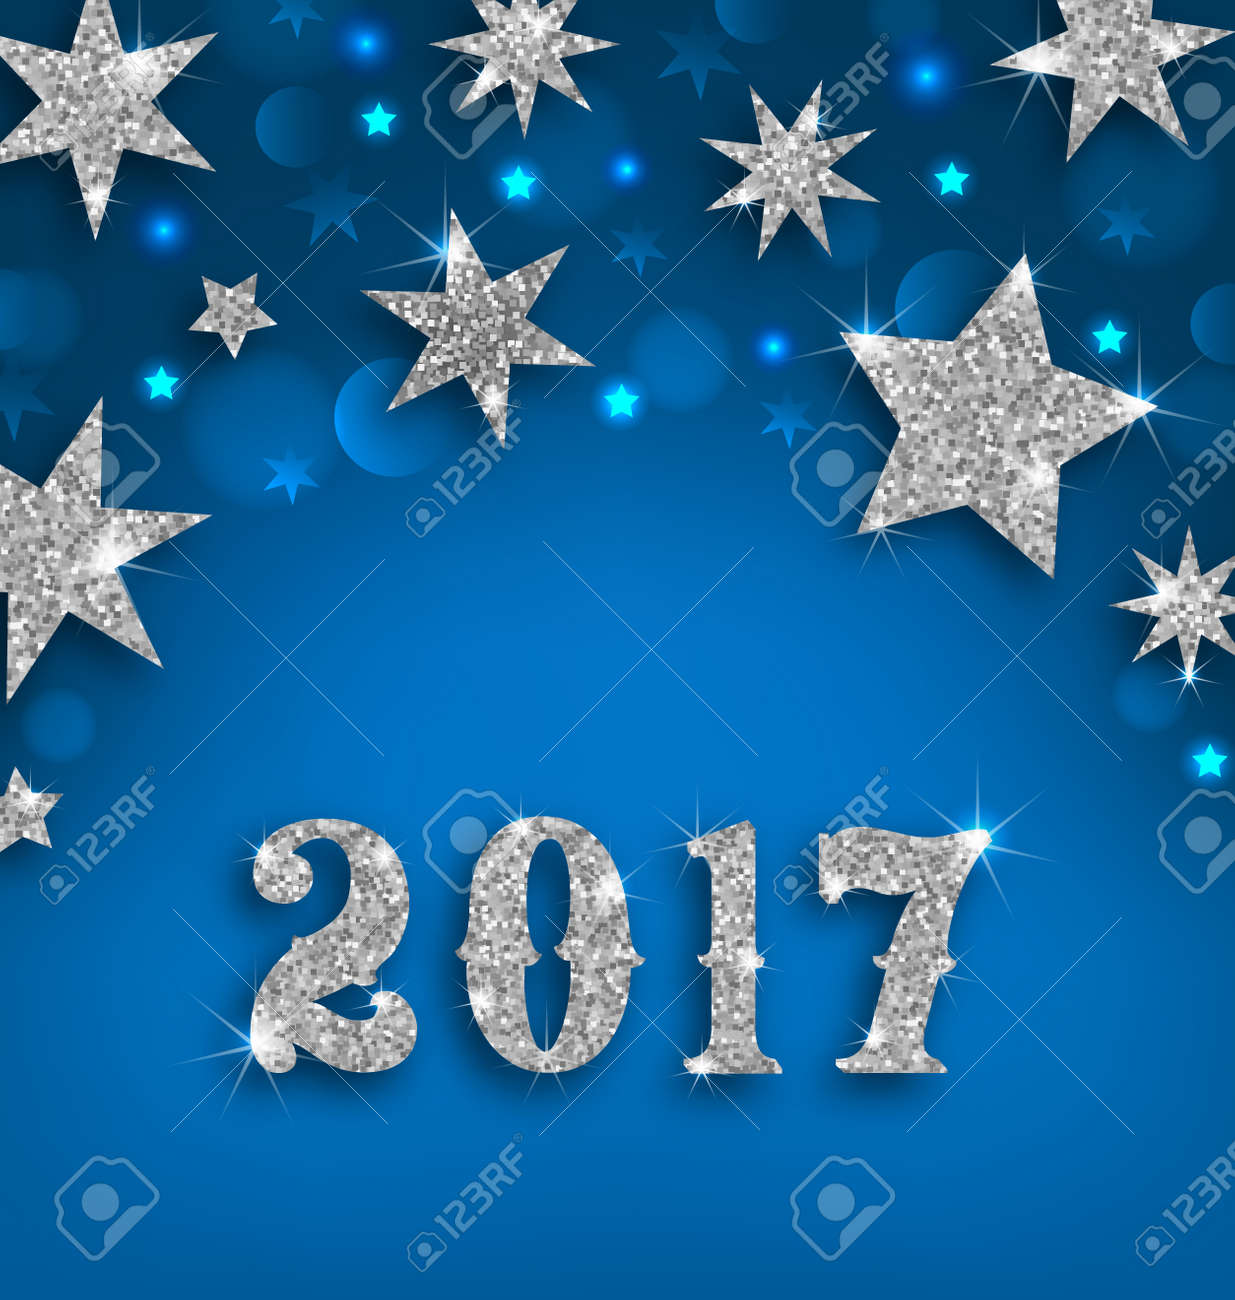 Illustration Starry Silver Background For Happy New Year 2017